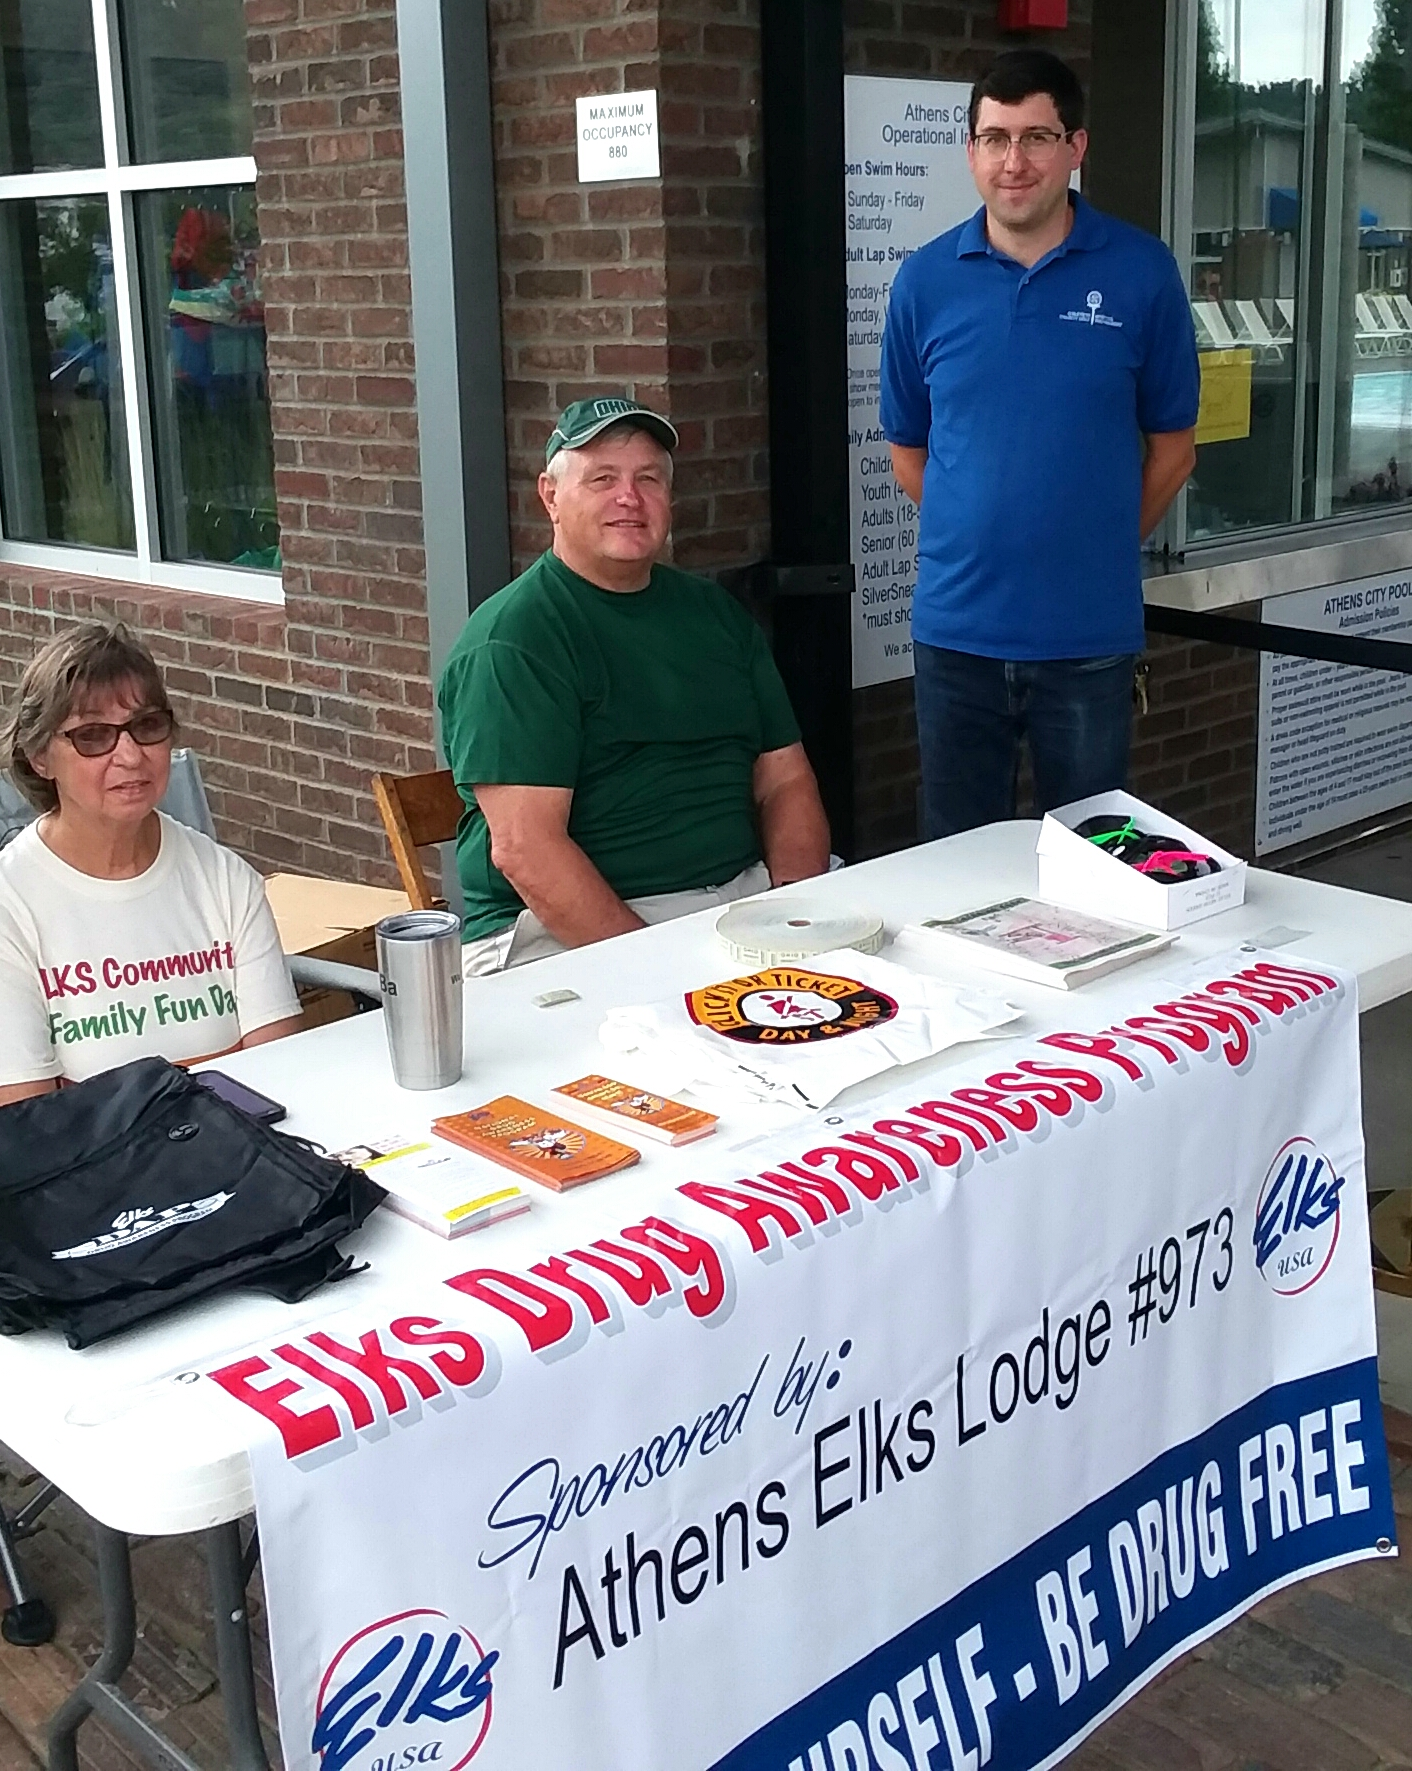 Pictured are: Elks volunteers Pat Morris, Roger Springer, and City of Athens recreational Asst. Director Andrew Chicki